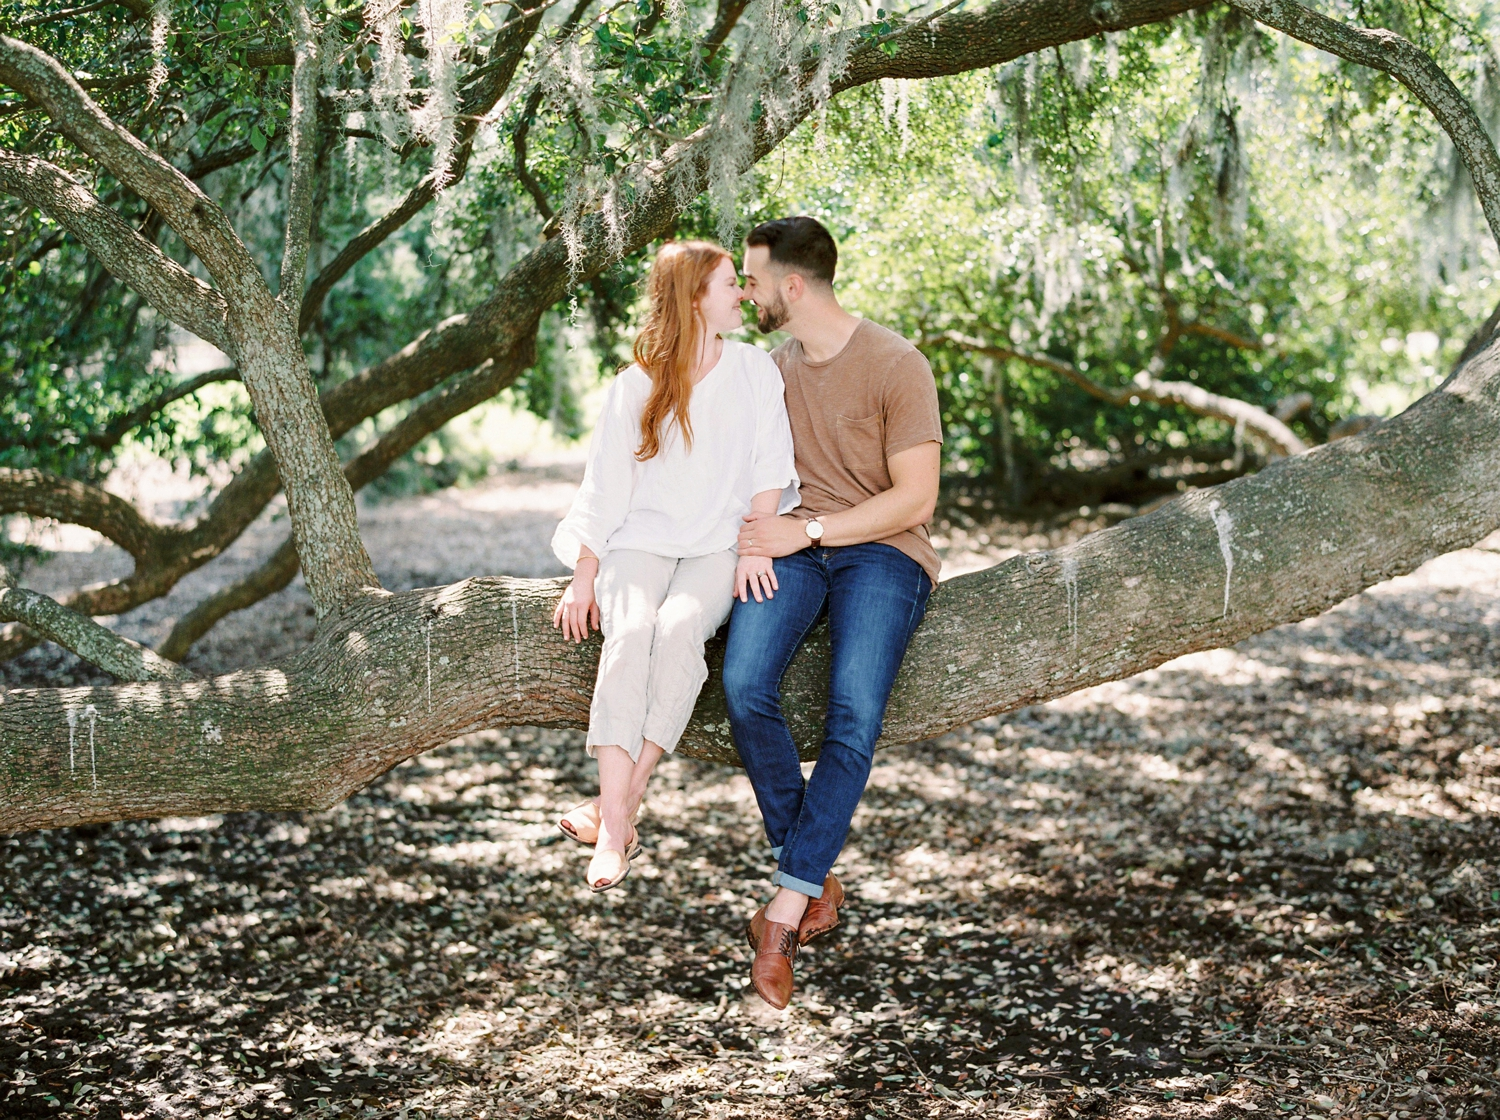 on wedding photographers | charleston anniversary | Justine Milton fine art film Photography | south carolina anniversary | fine art film photography | couples